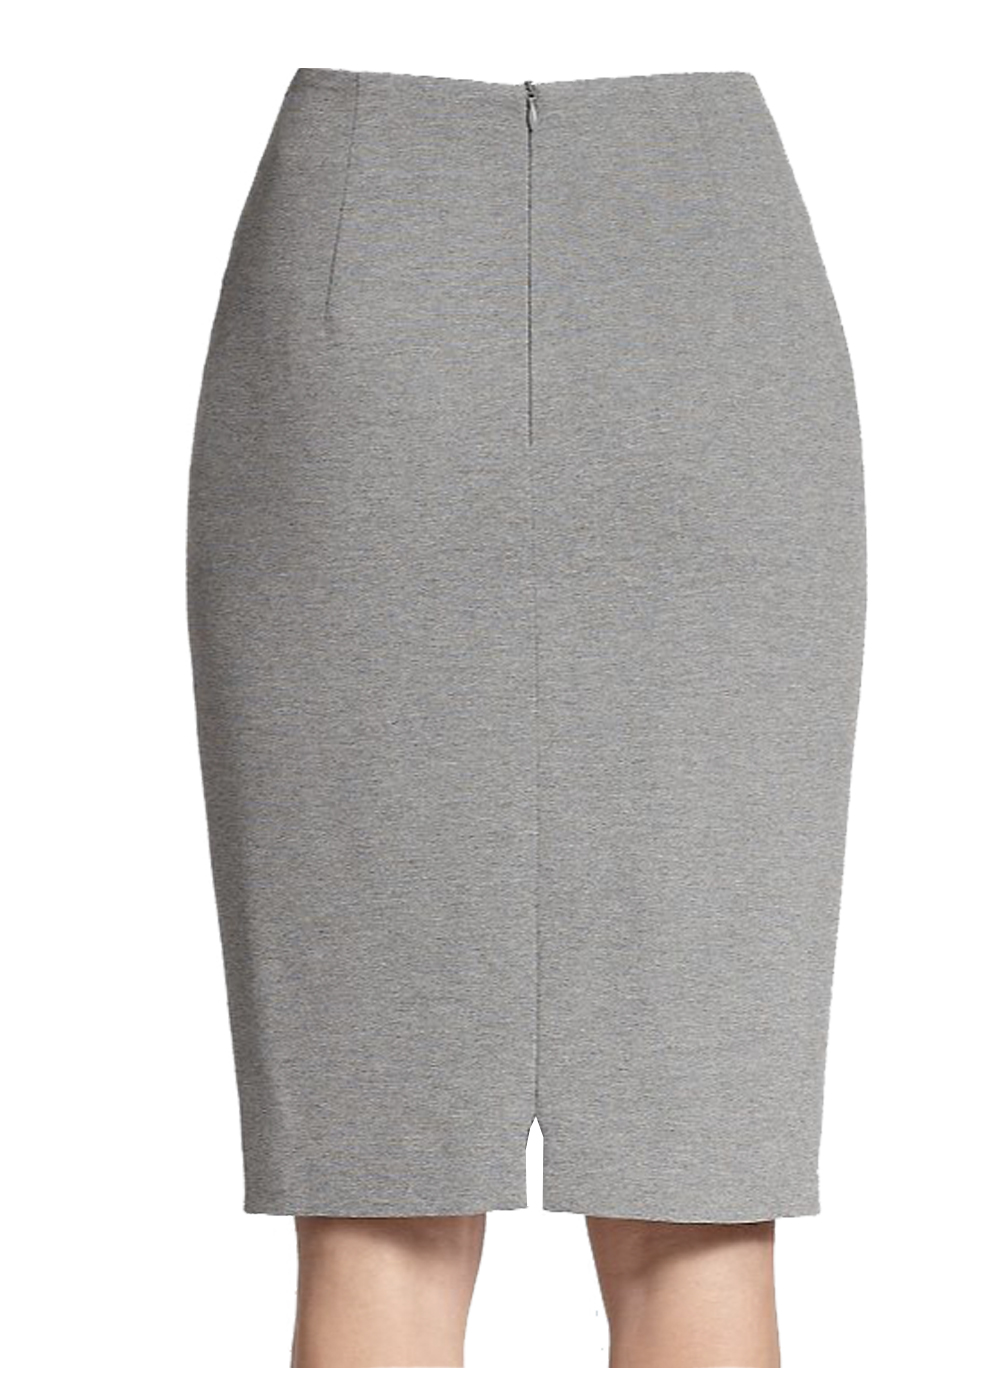 Classic Gray Polyester Wrinkle Free Pencil Skirt